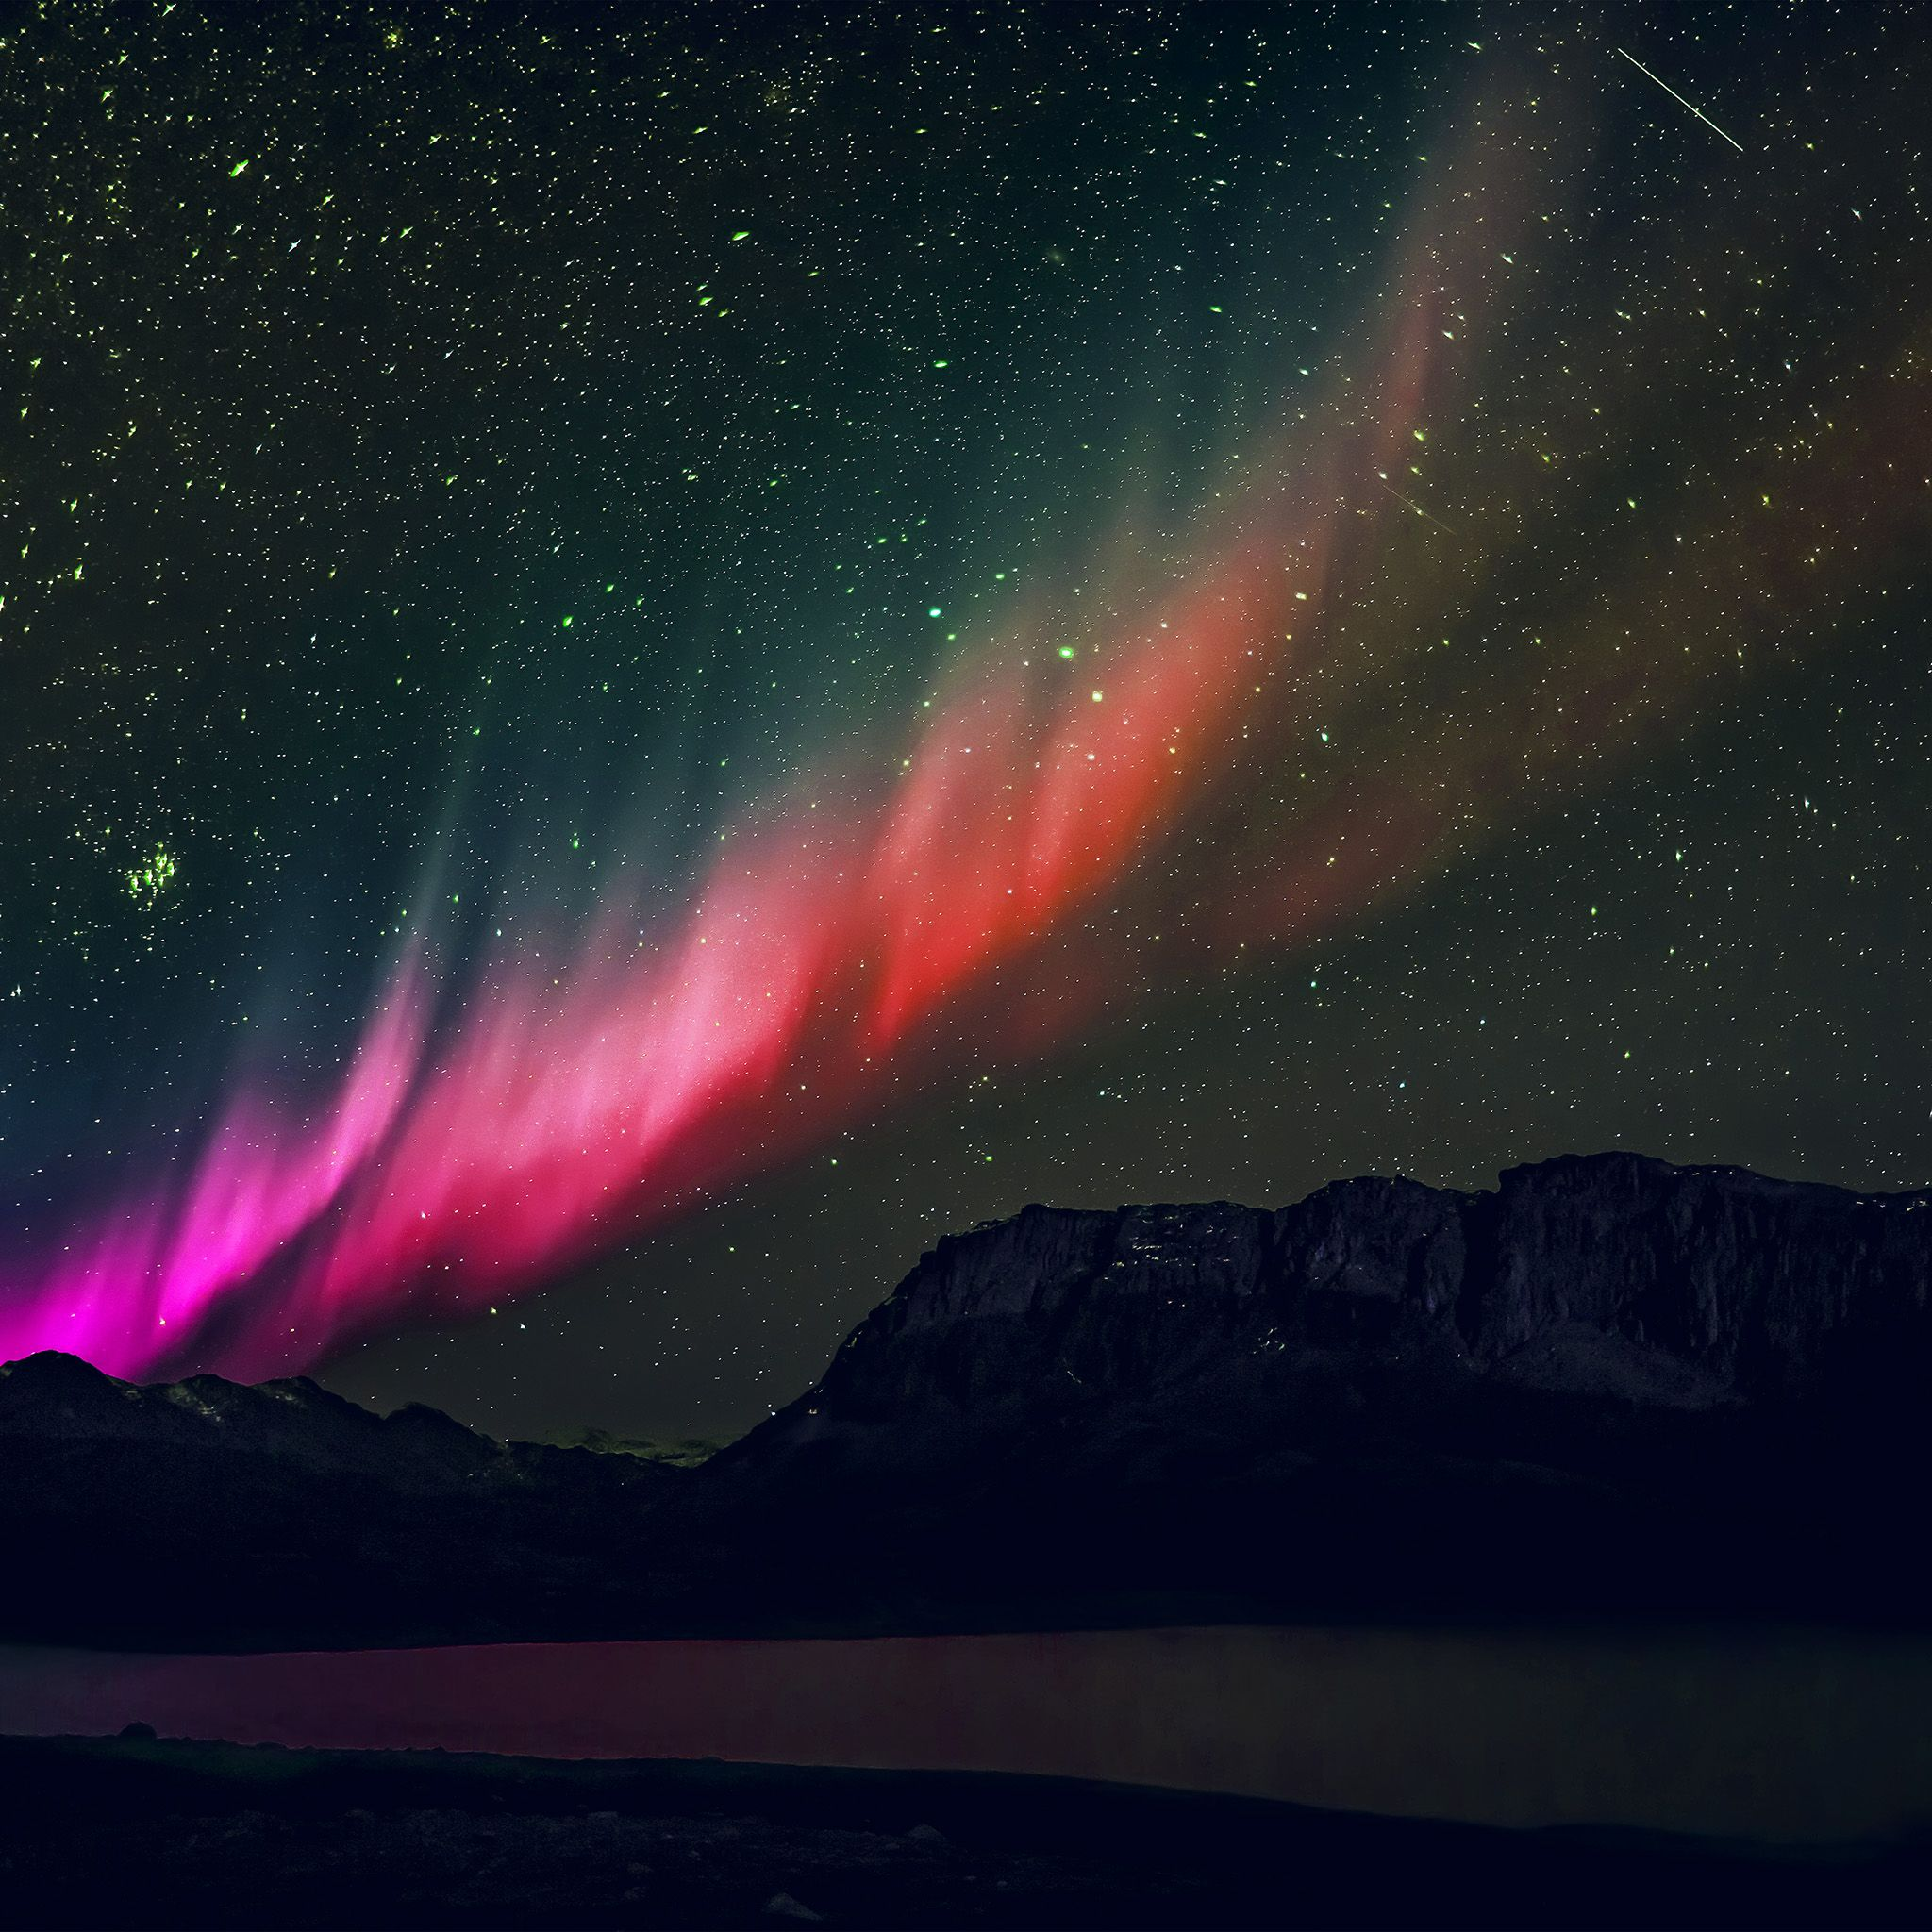 Mountain Night Sky Wallpapers - Top Free Mountain Night Sky